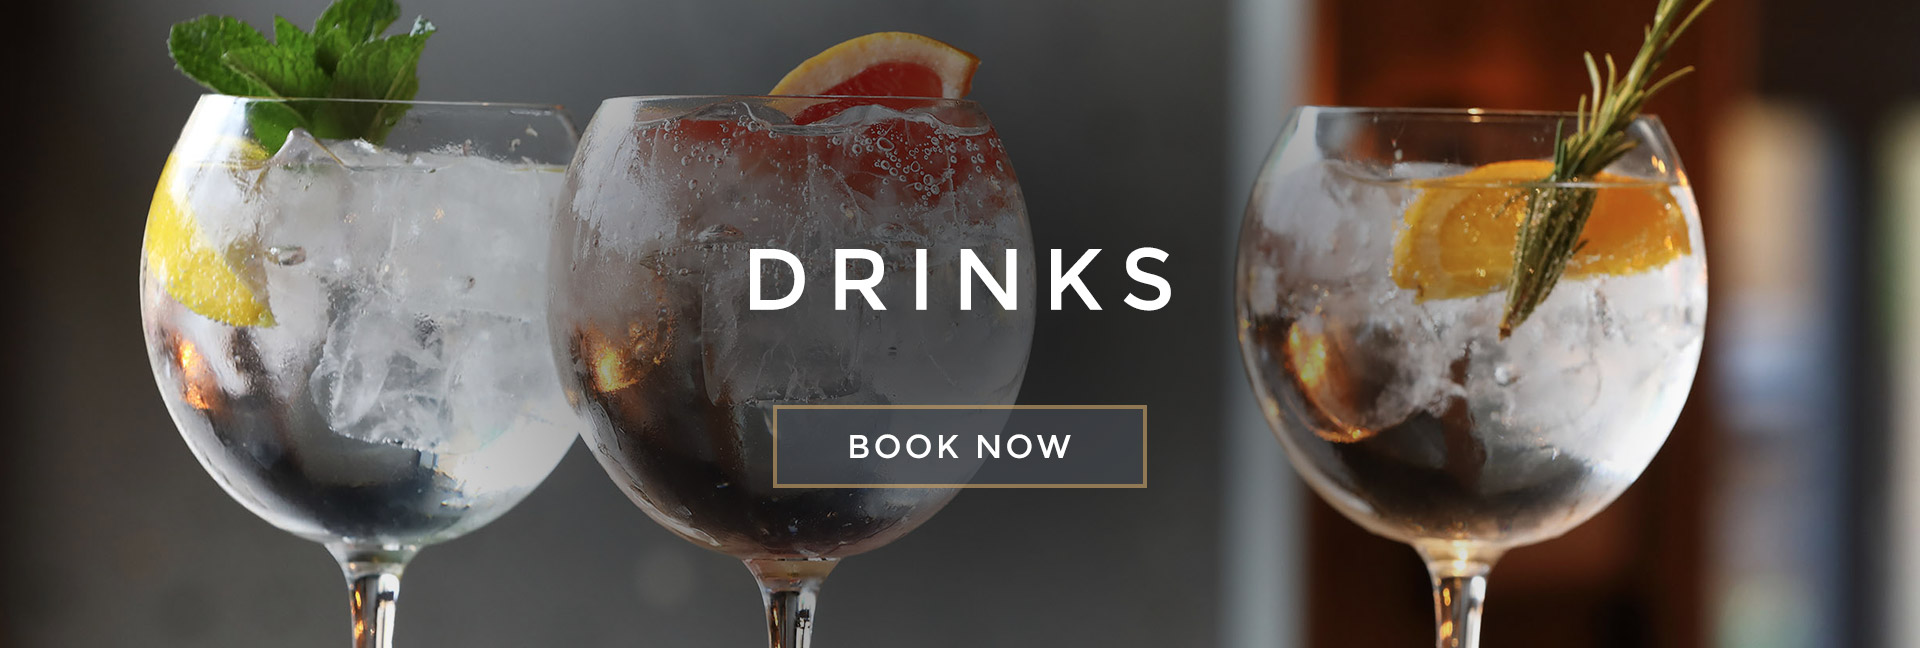 Drinks at All Bar One Glasgow - Book your table